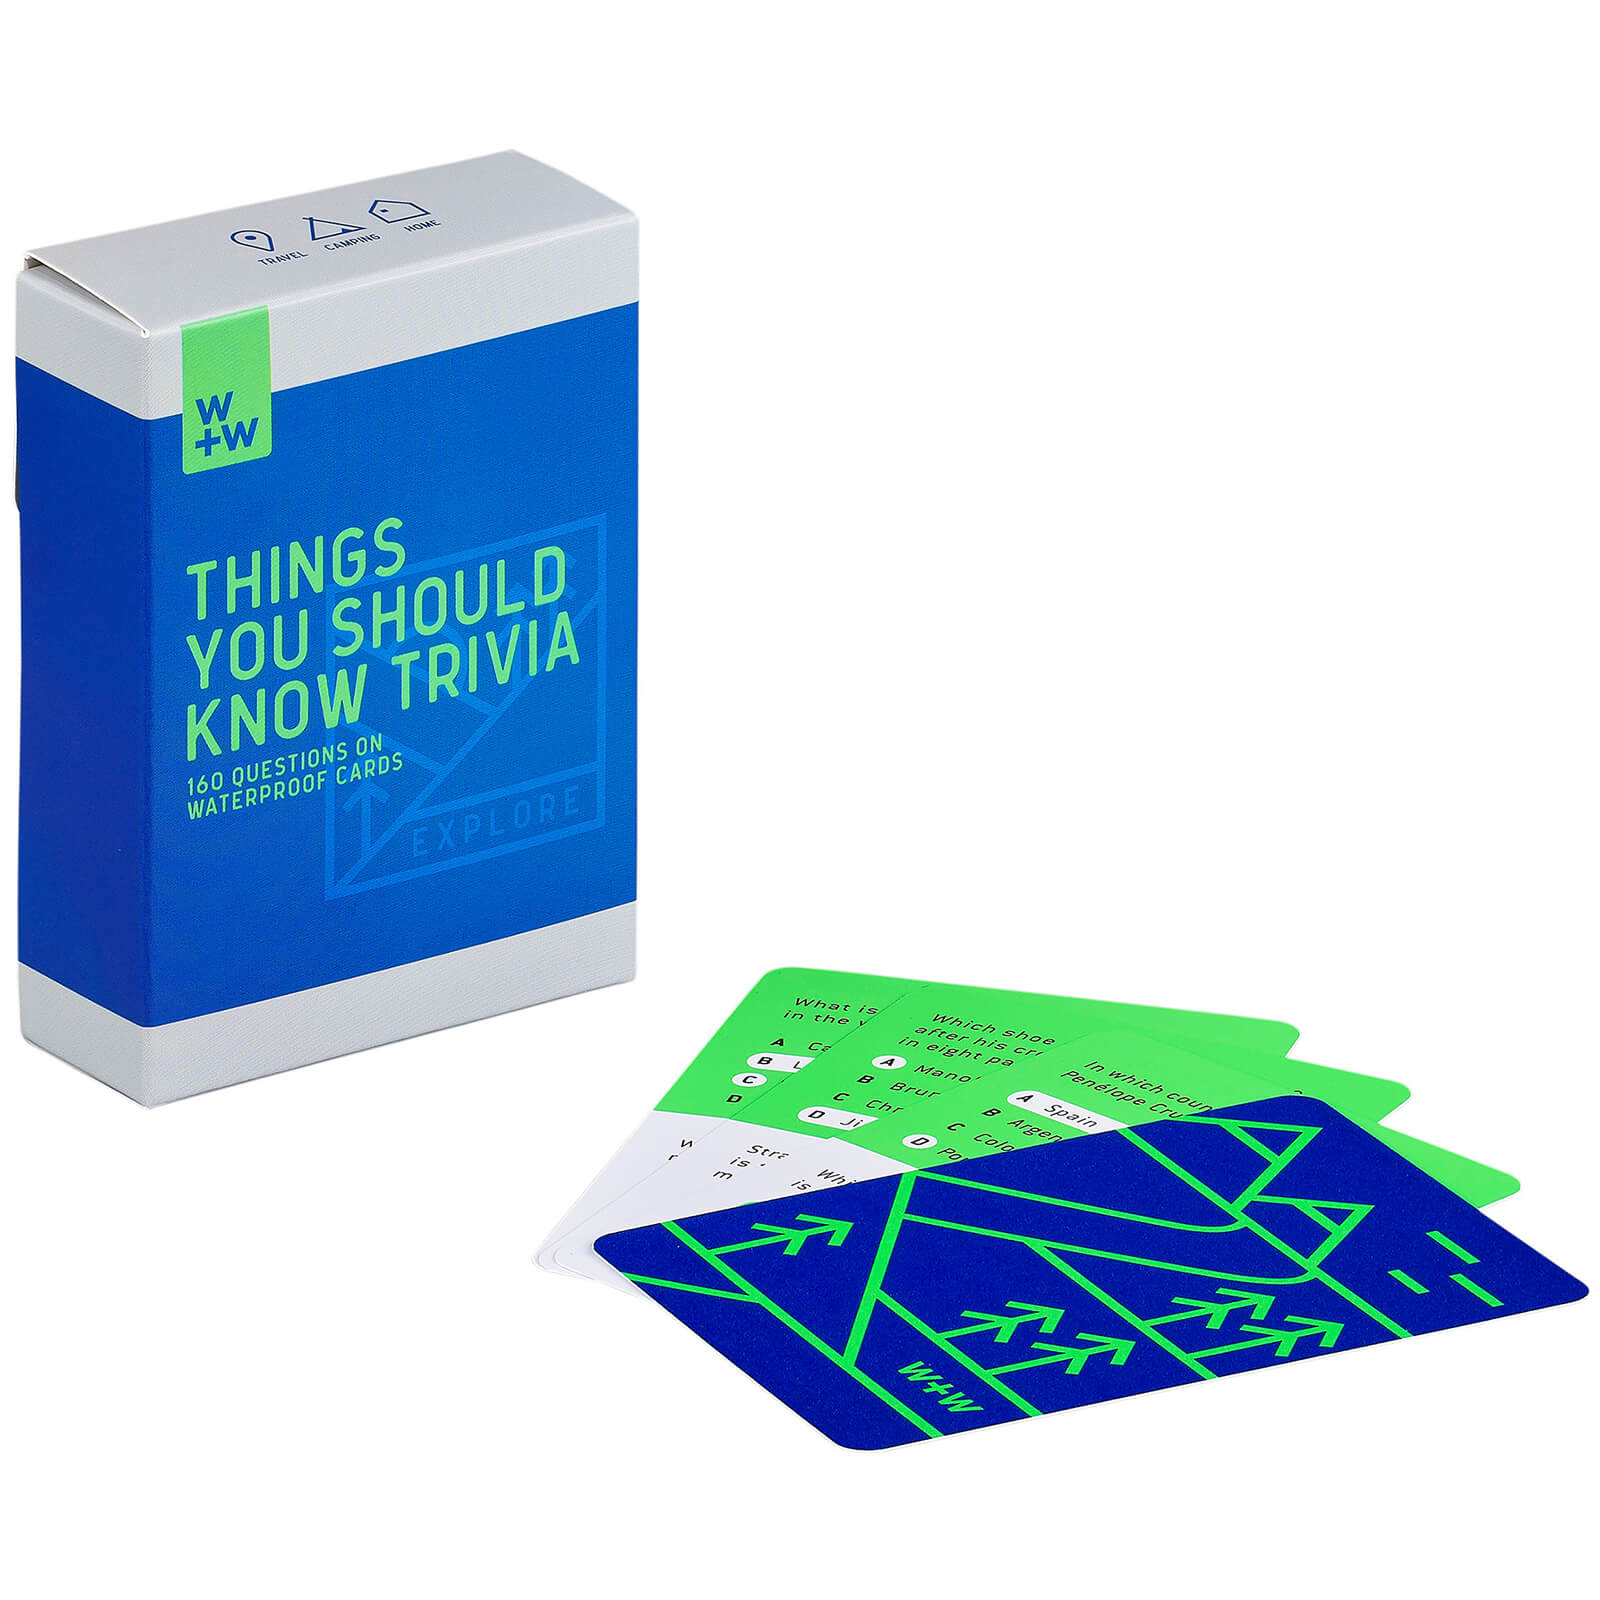 Image of Things You Should Know Trivia